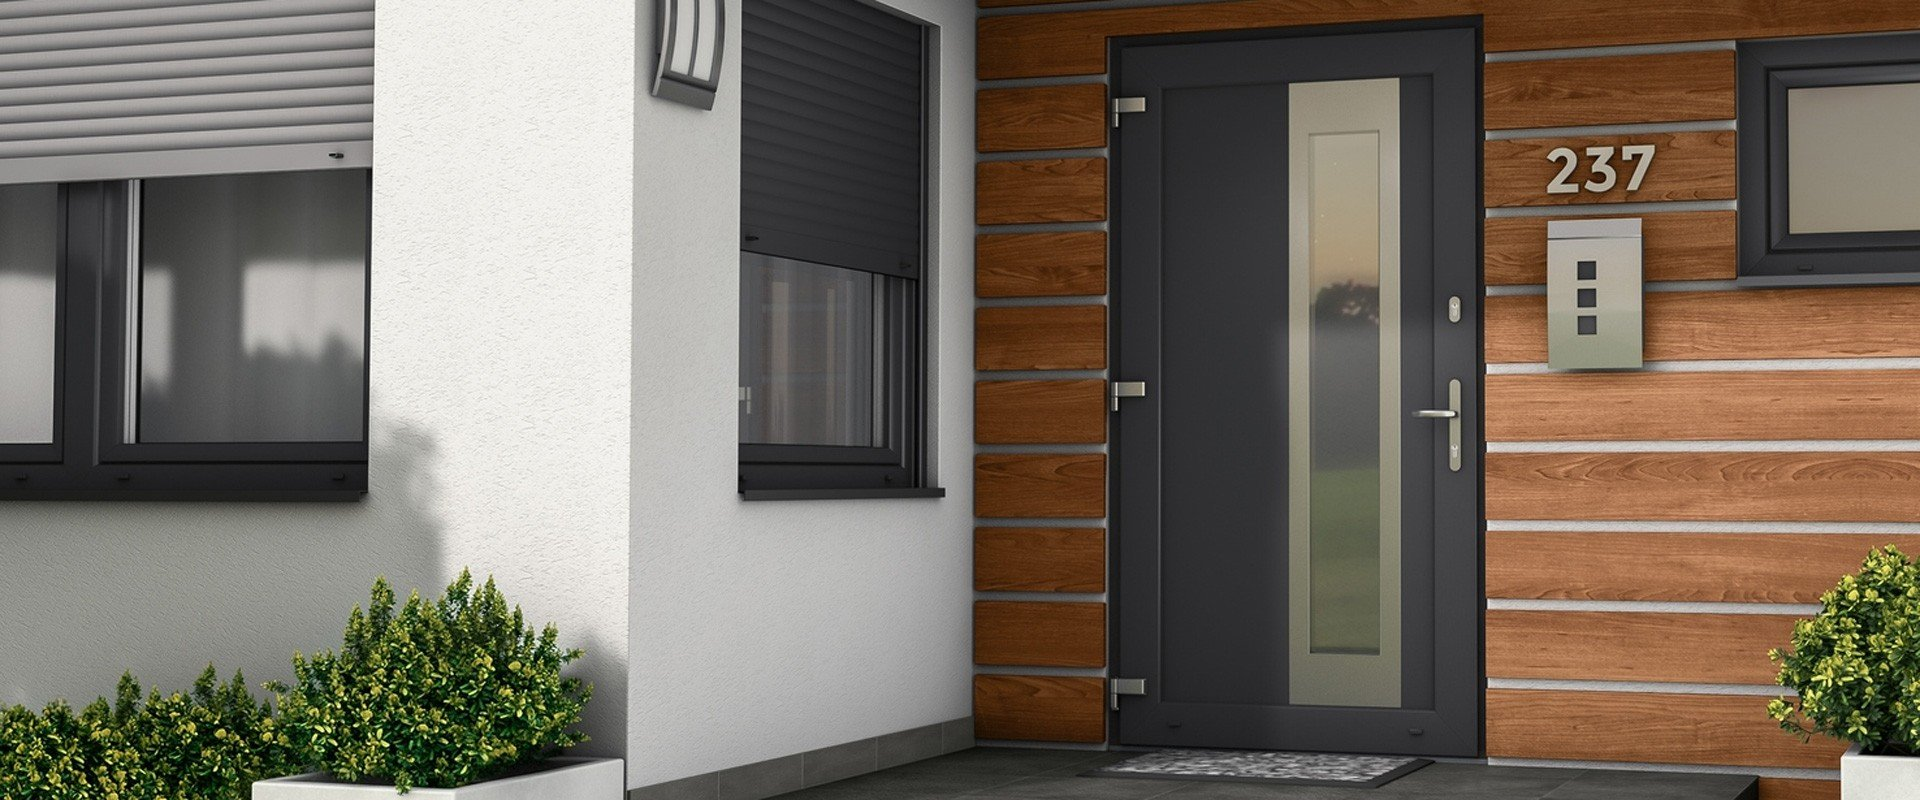 DRUTEX PRESENTS ITS OWN, ORIGINAL DESIGN OF FRONT DOORS.